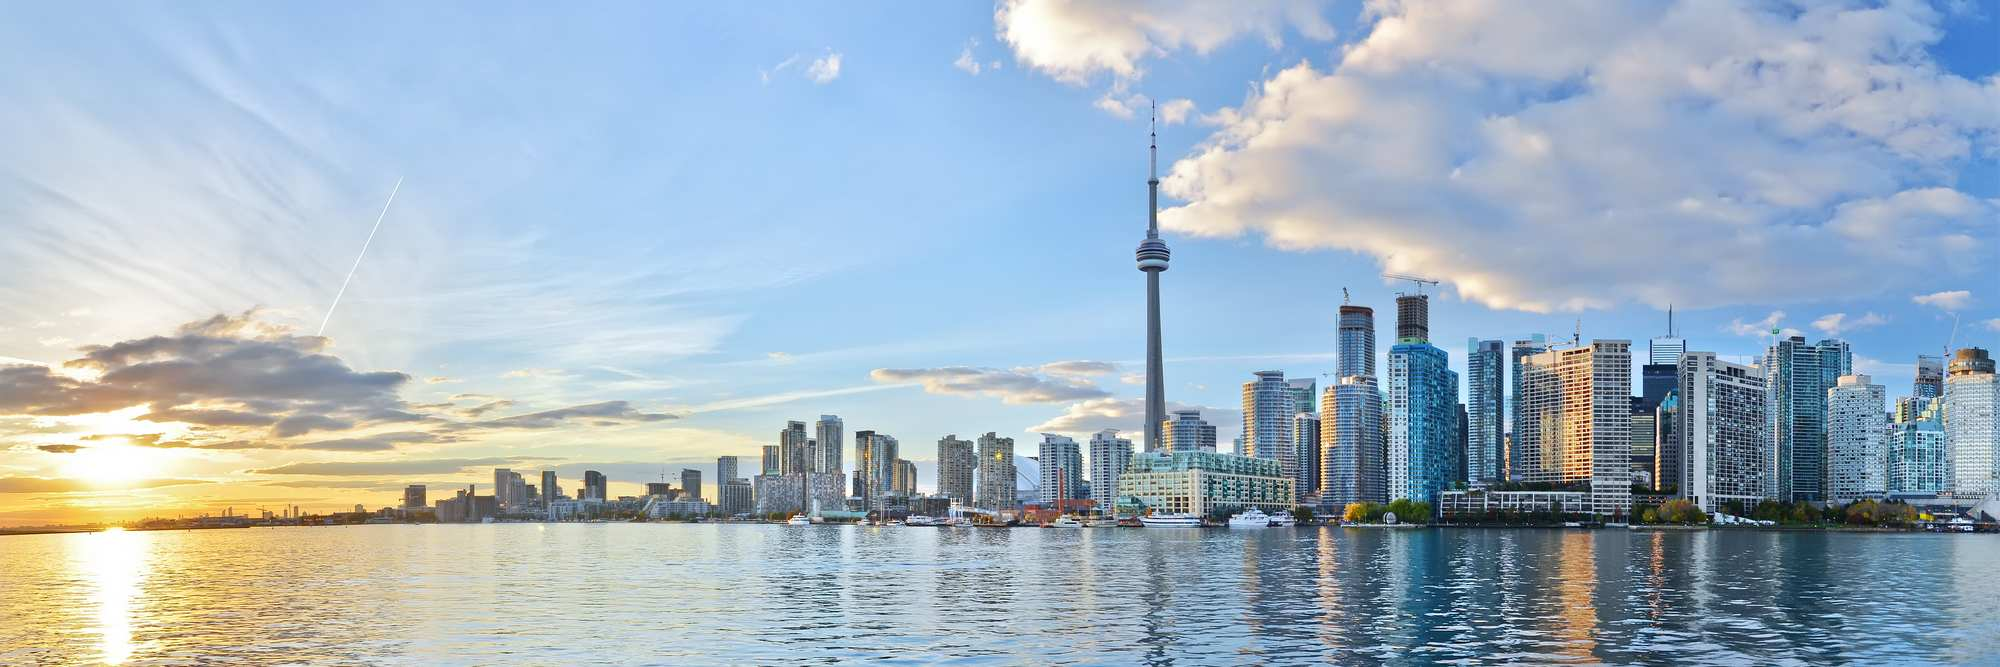 Panorama-of-Toronto-skyline